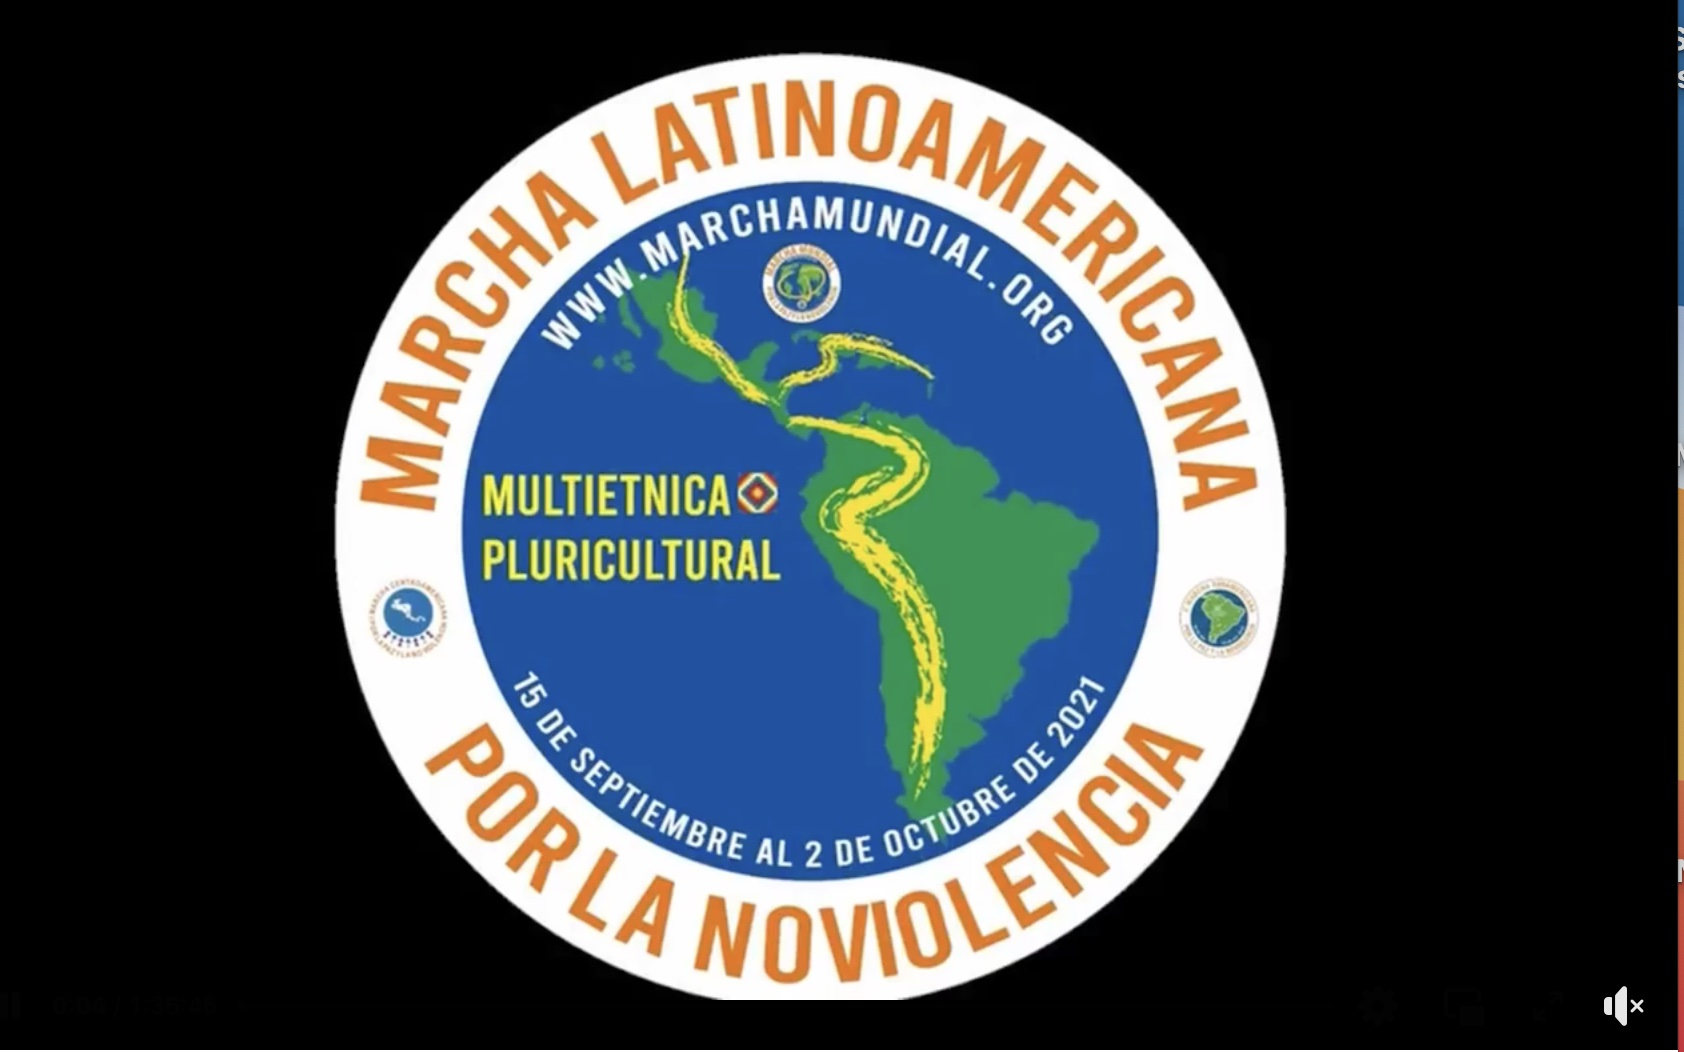 Successful start of the Latin American March for Nonviolence, Multiethnic and Pluricultural